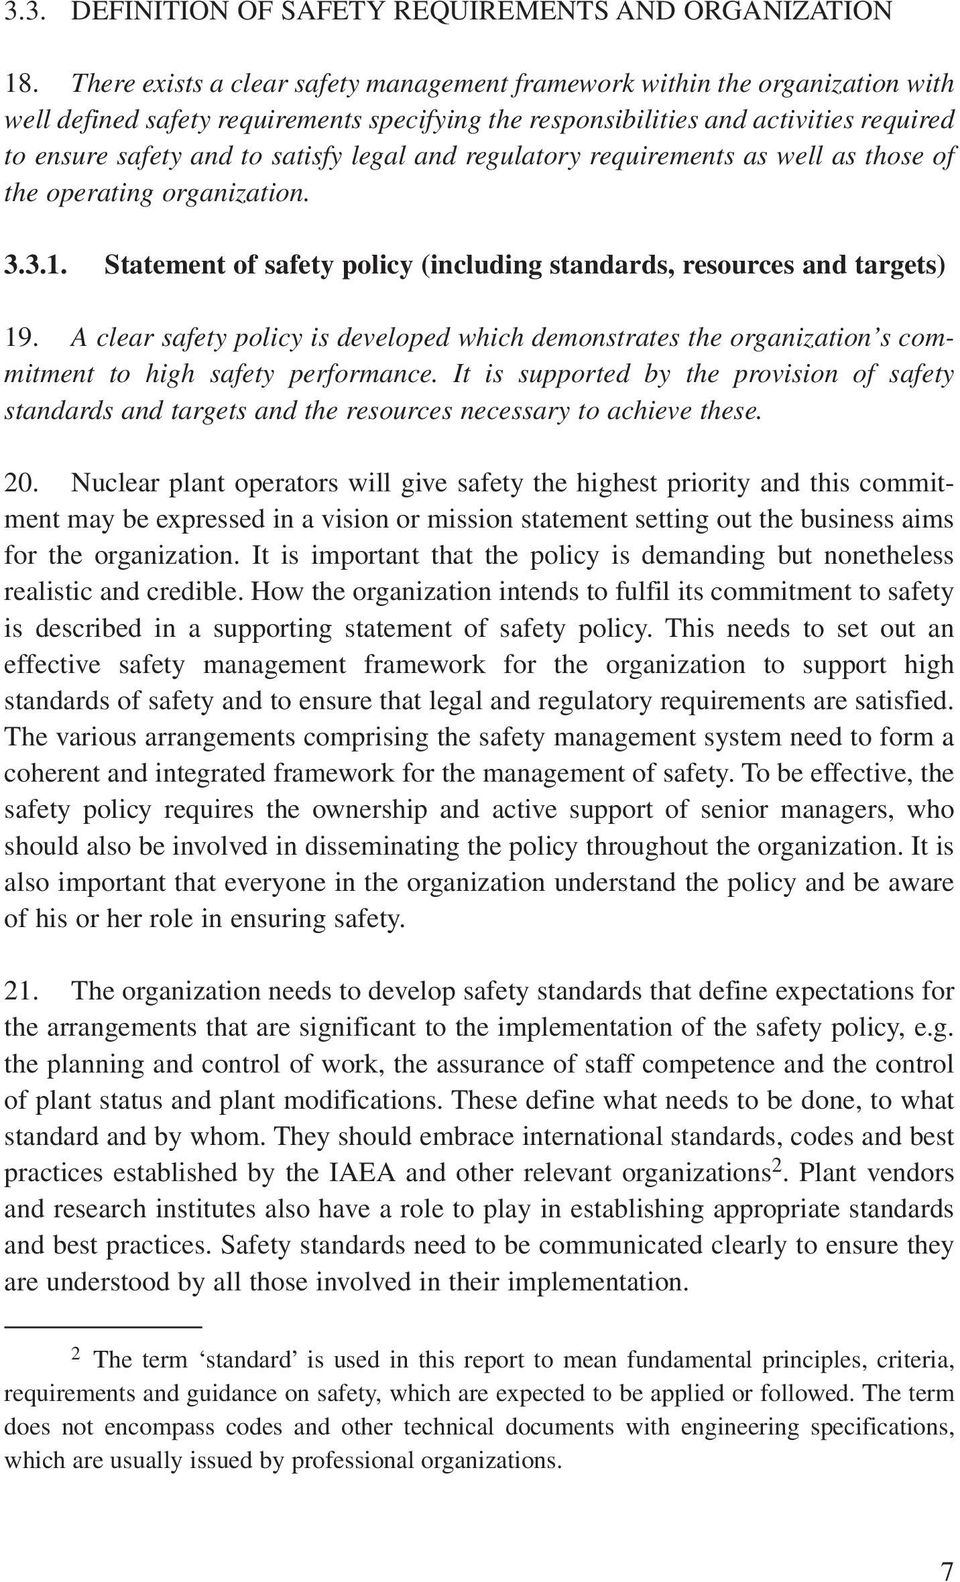 legal and regulatory requirements as well as those of the operating organization. 3.3.1. Statement of safety policy (including standards, resources and targets) 19.